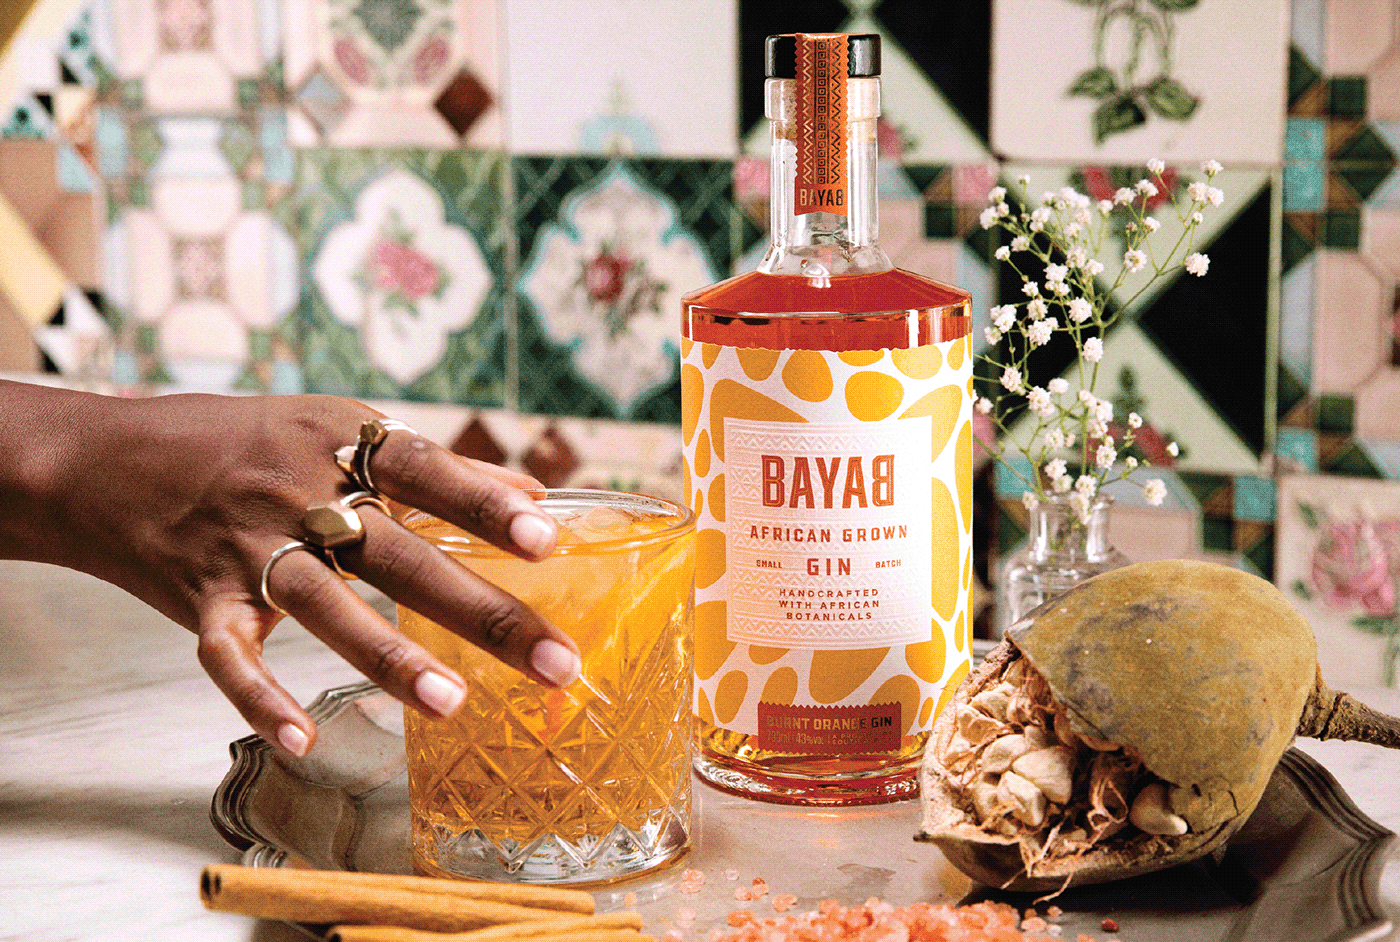 Thumbnail for Brand Of The Day: Bayab Gin